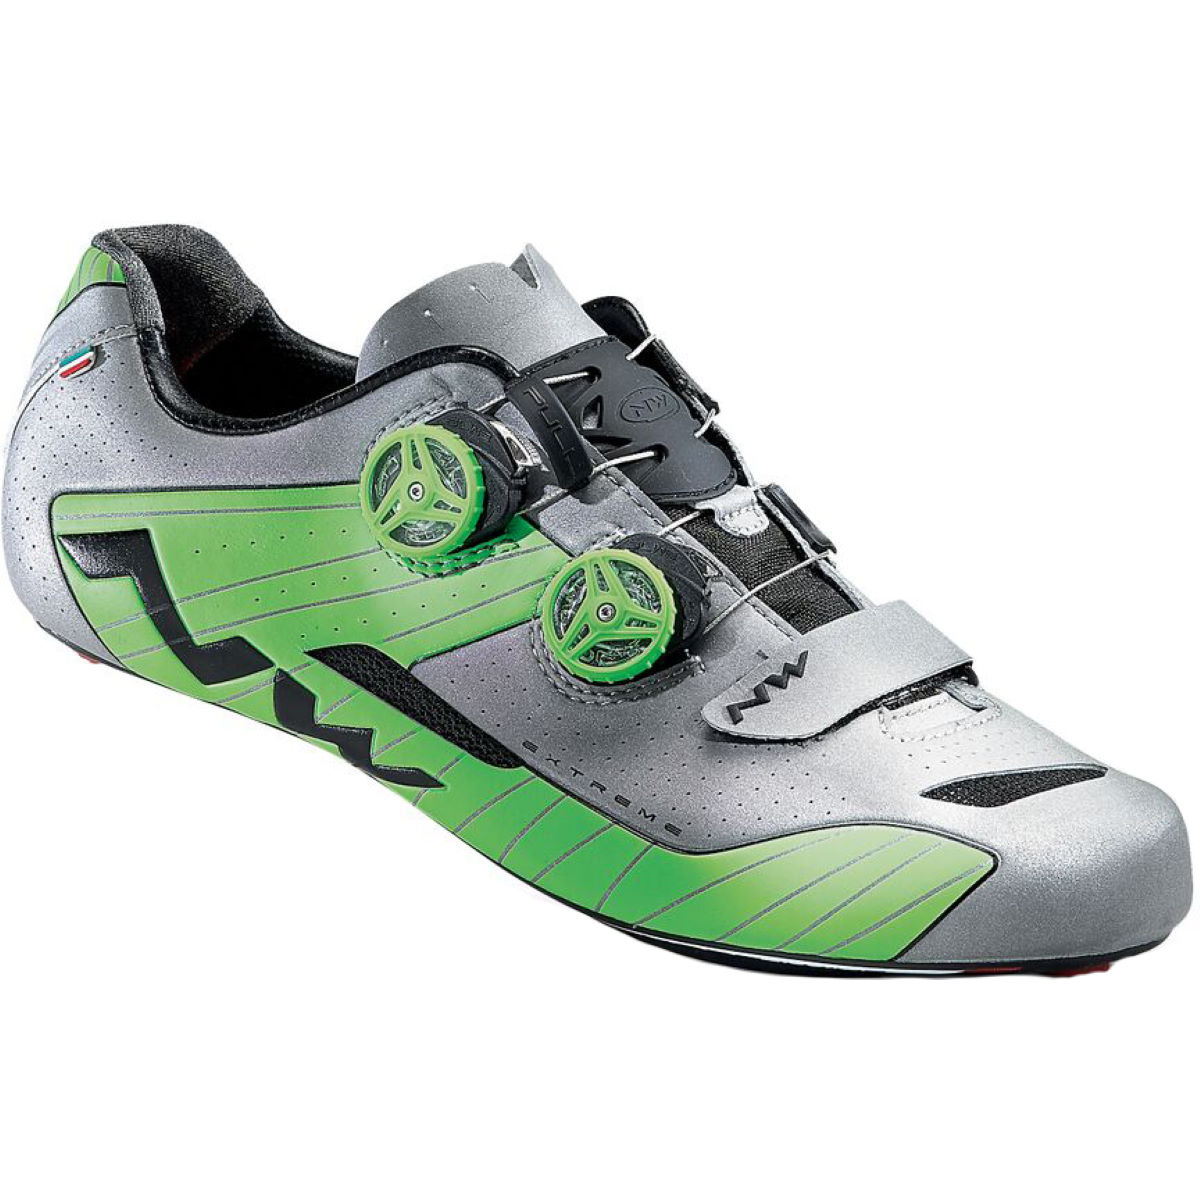 Northwave Extreme Road Shoes   Road Shoes